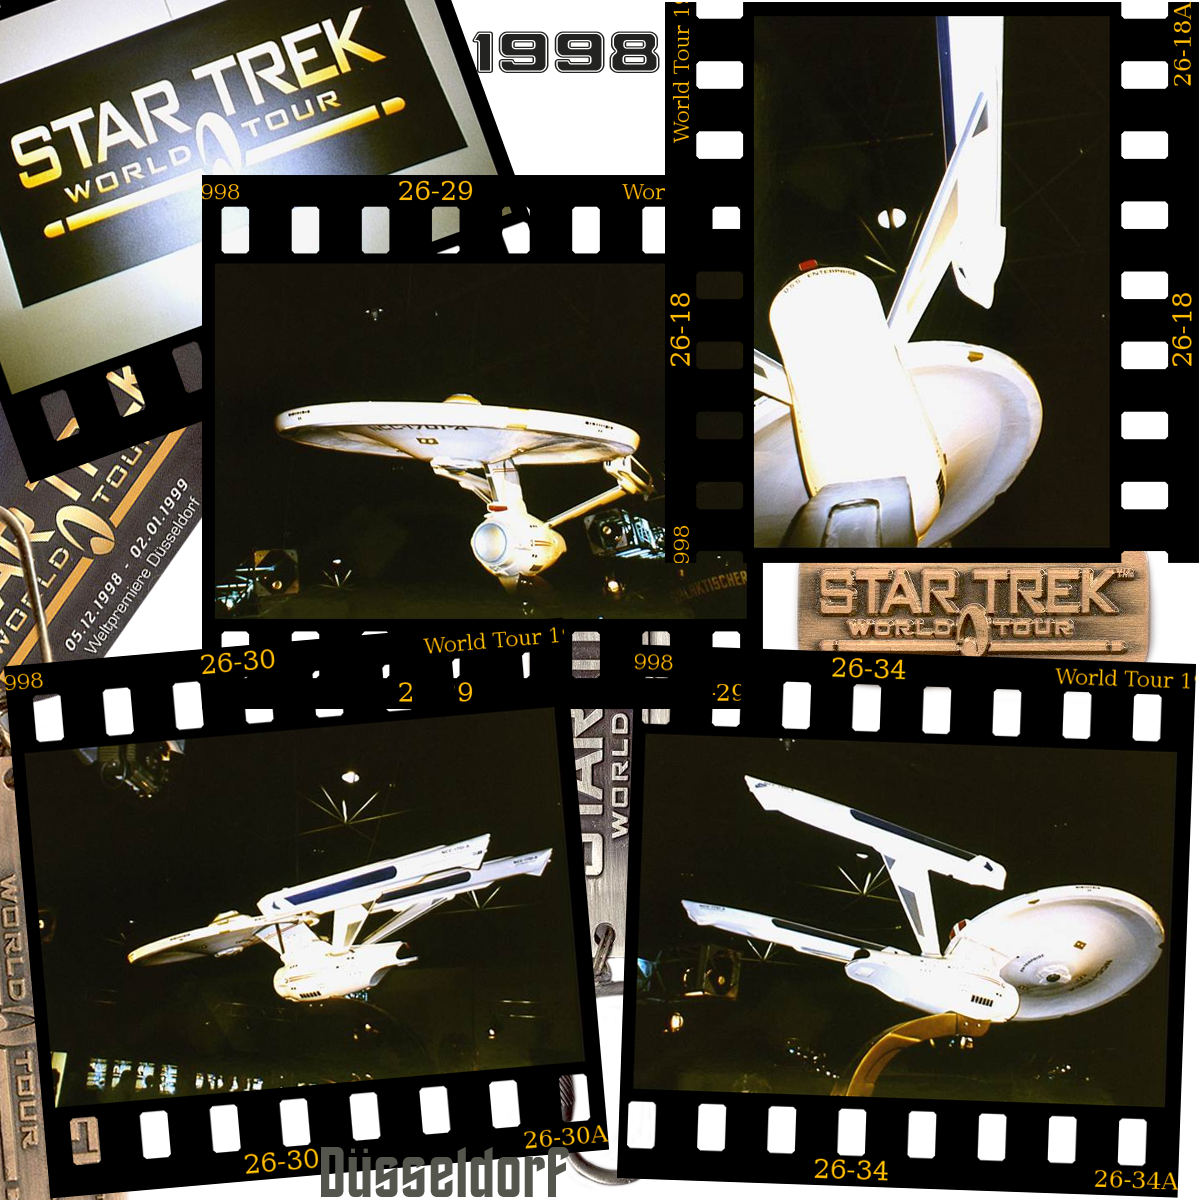 Star Trek World Tour 1998 slides Duesseldorf NCC-1701-A